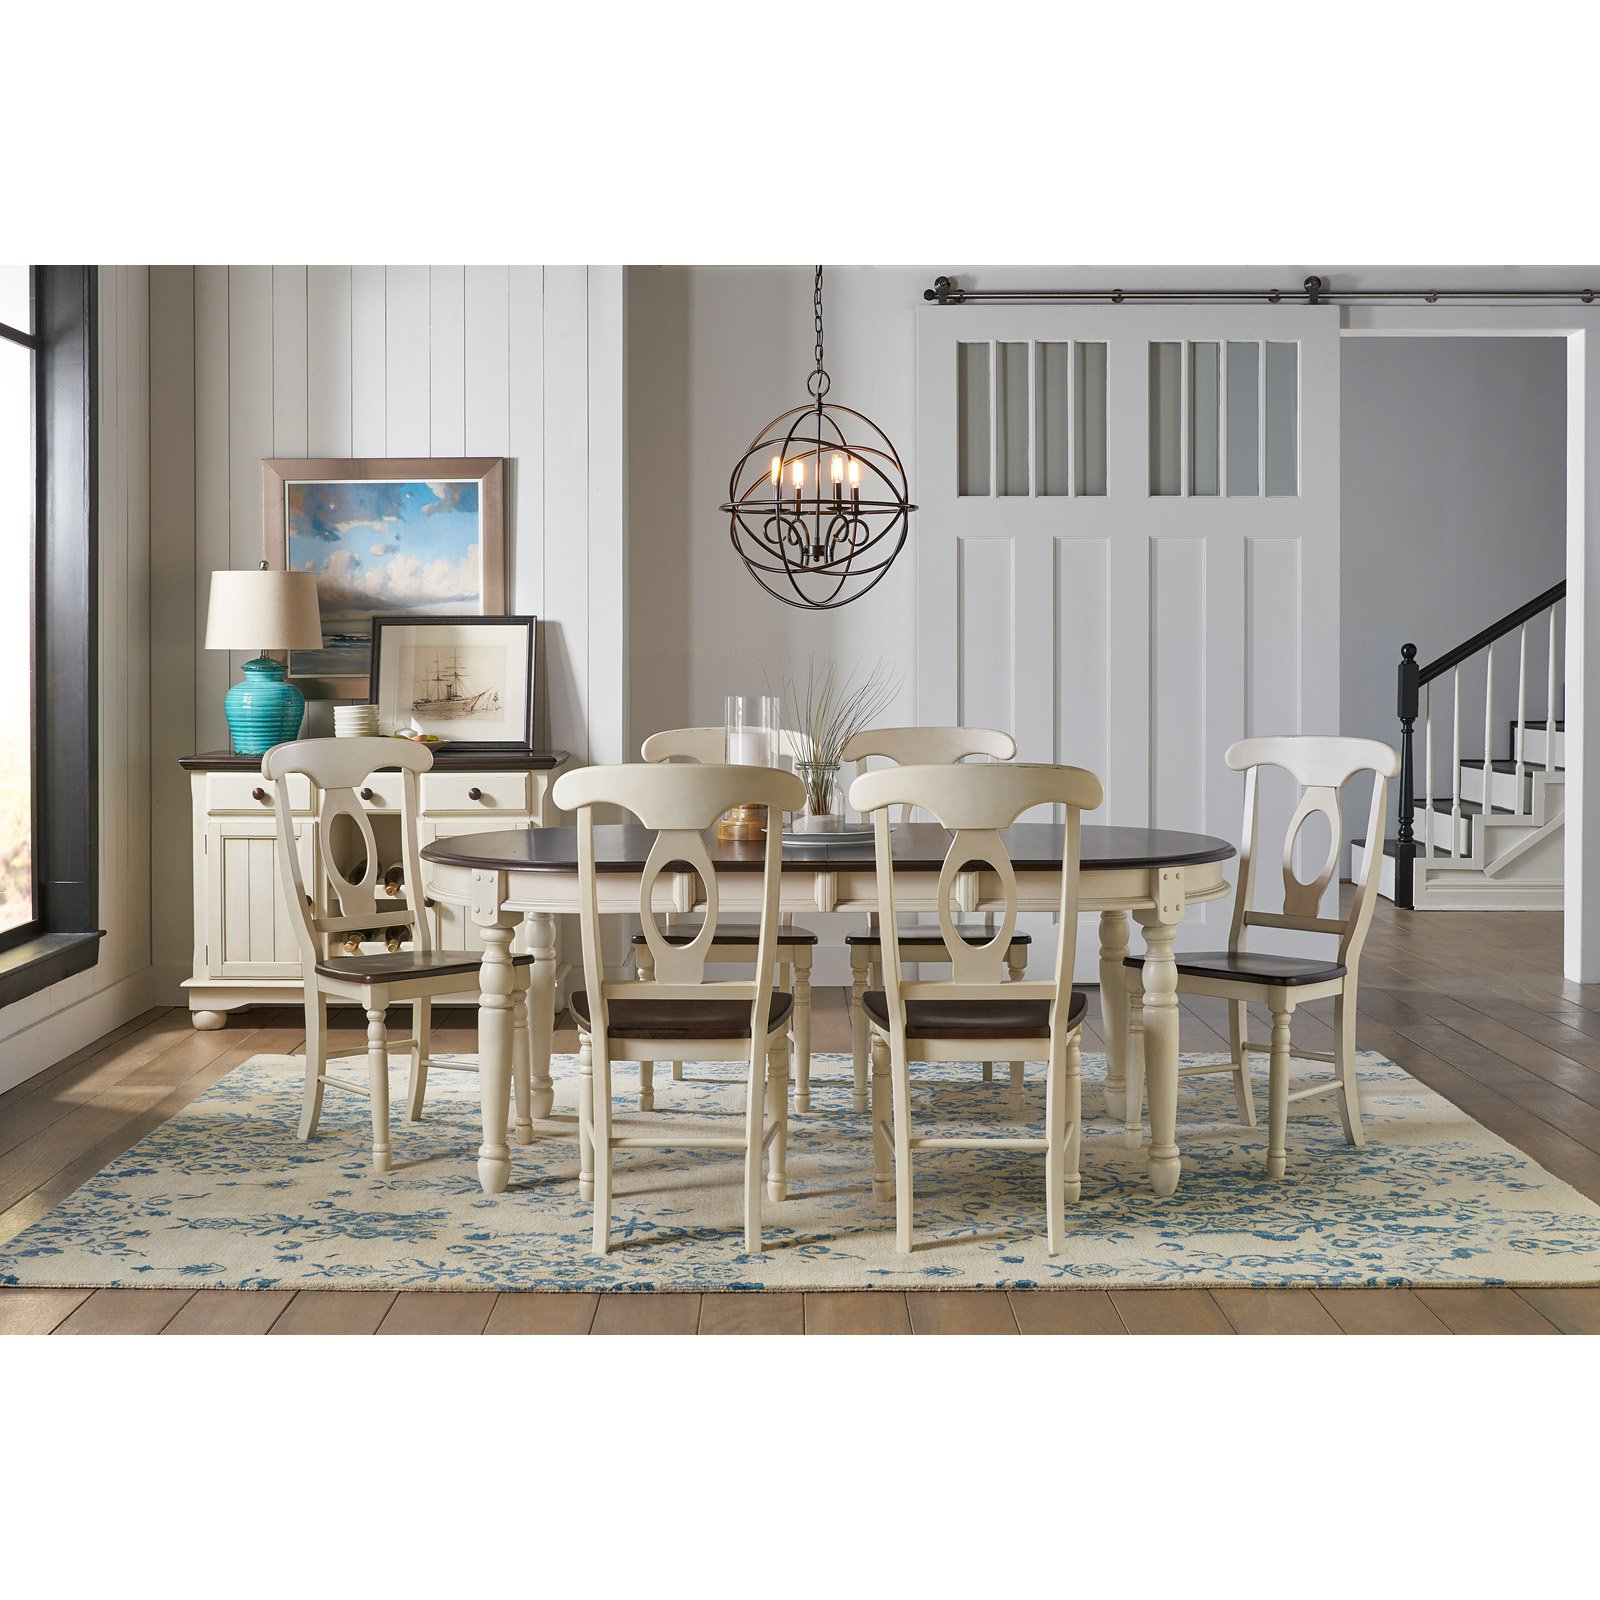 A-America British Isles 76 in. Oval Leaf Dining Table